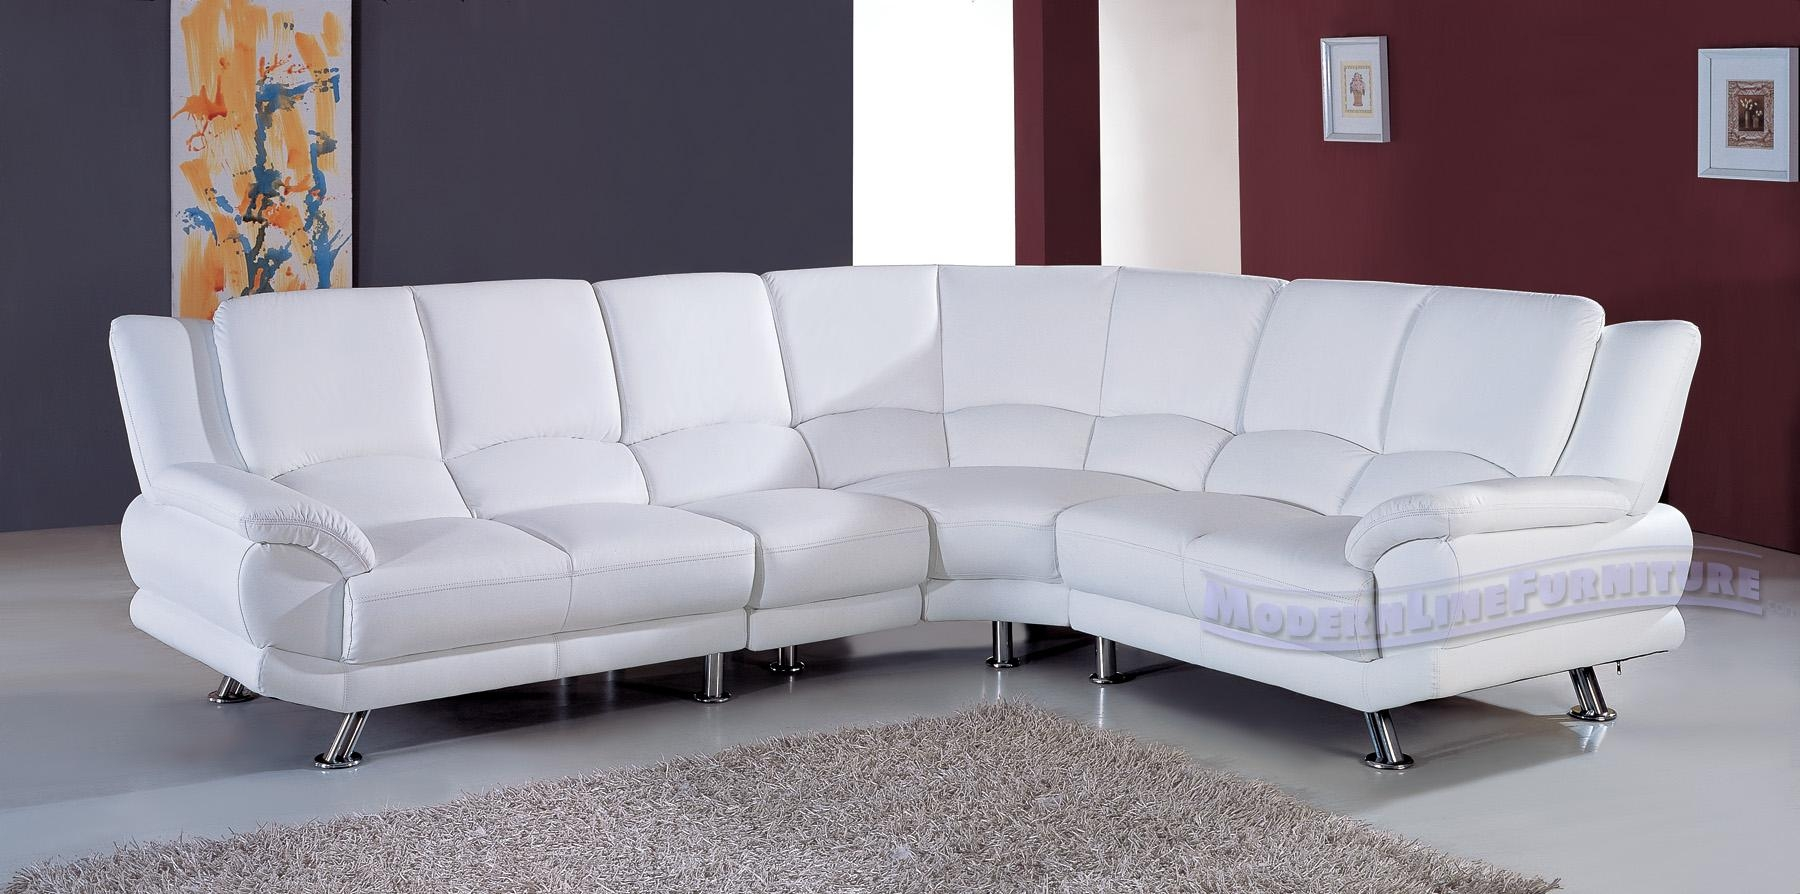 White Leather Sofas In White Leather Sofas (View 6 of 20)